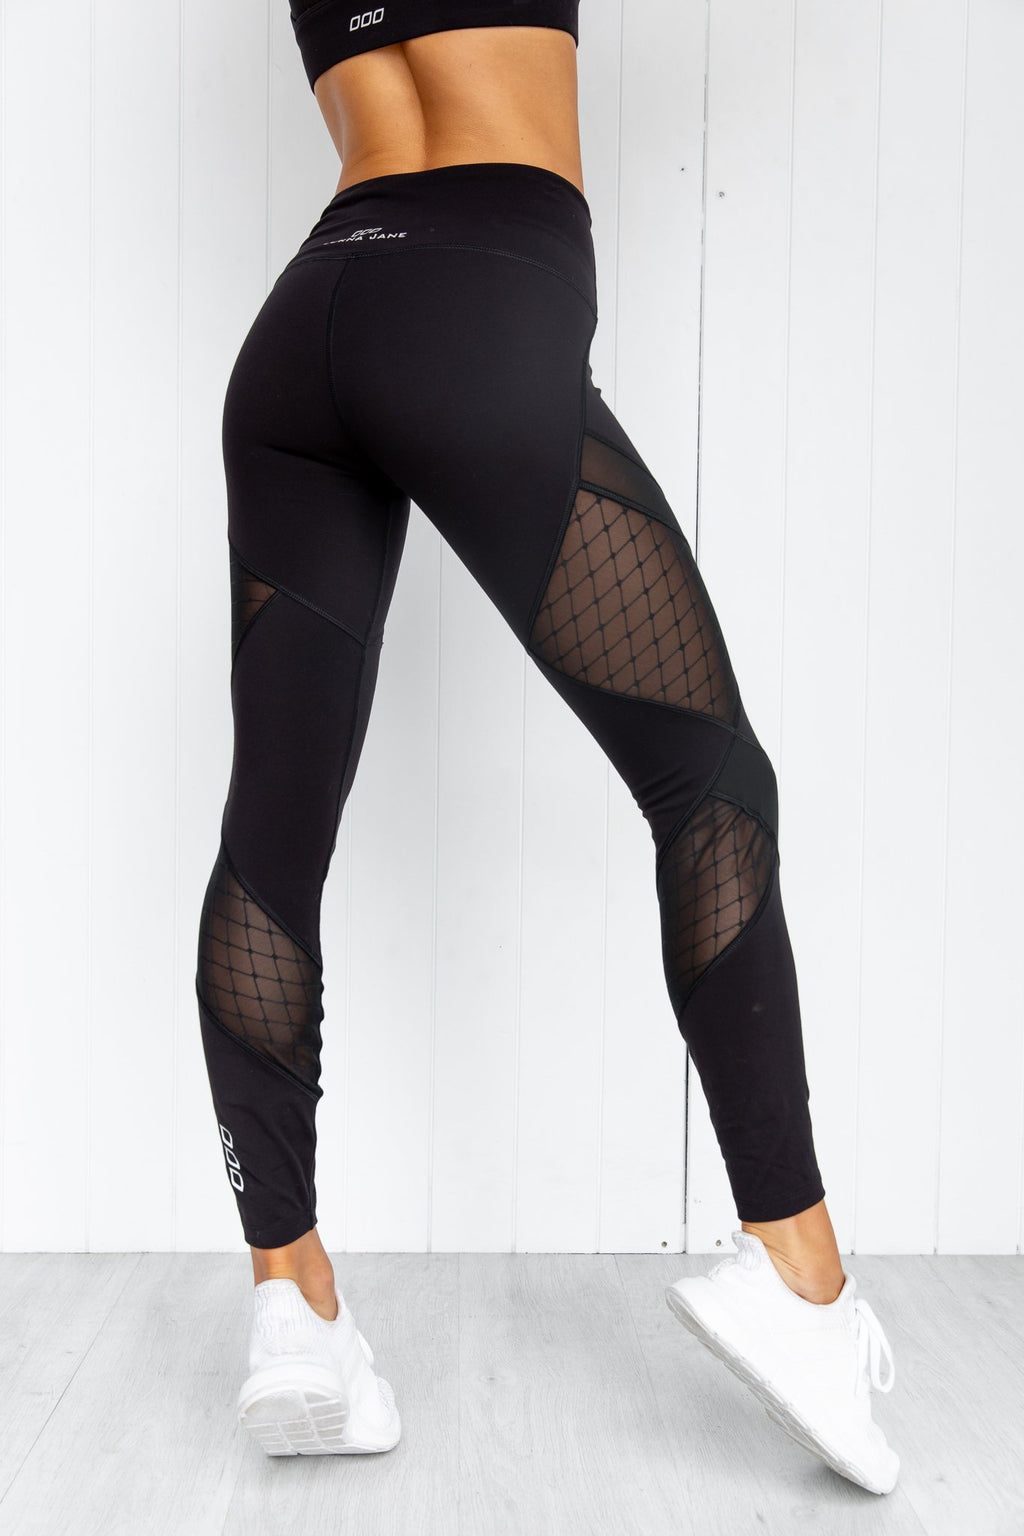 Faster Full Length Tight - Black - PURE DASH